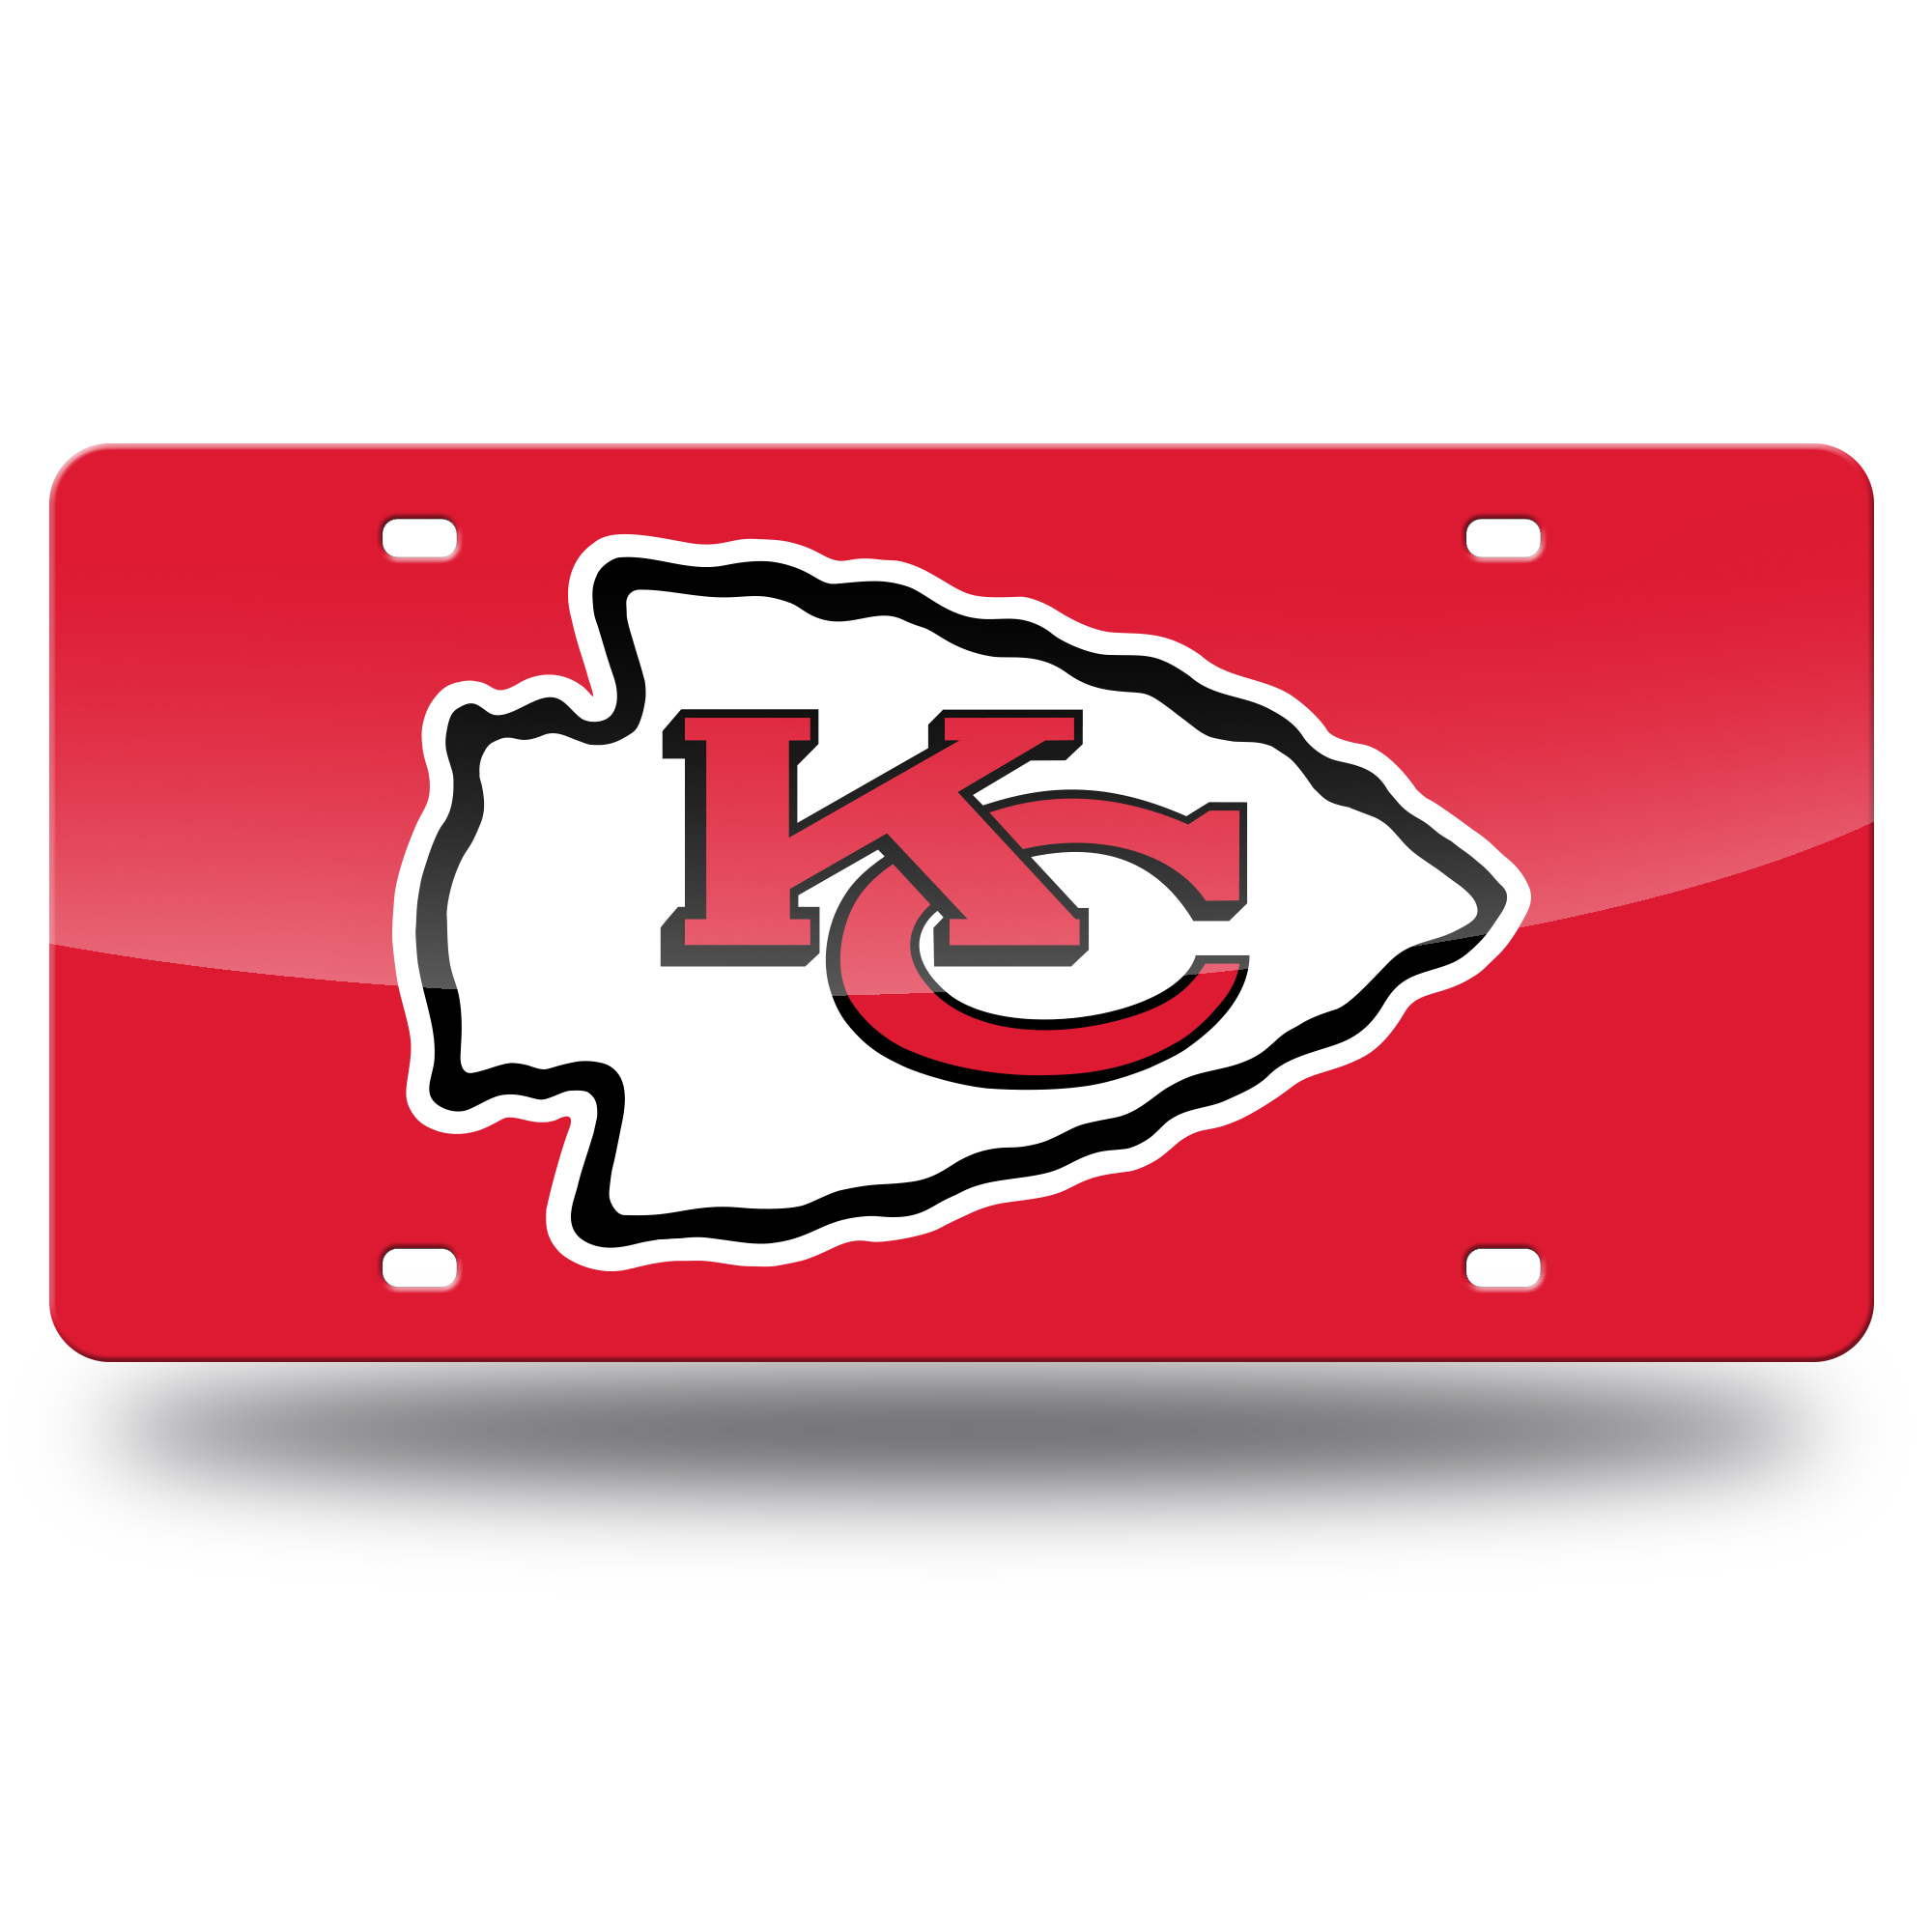 Customize NFL License Plates by Auto Plates